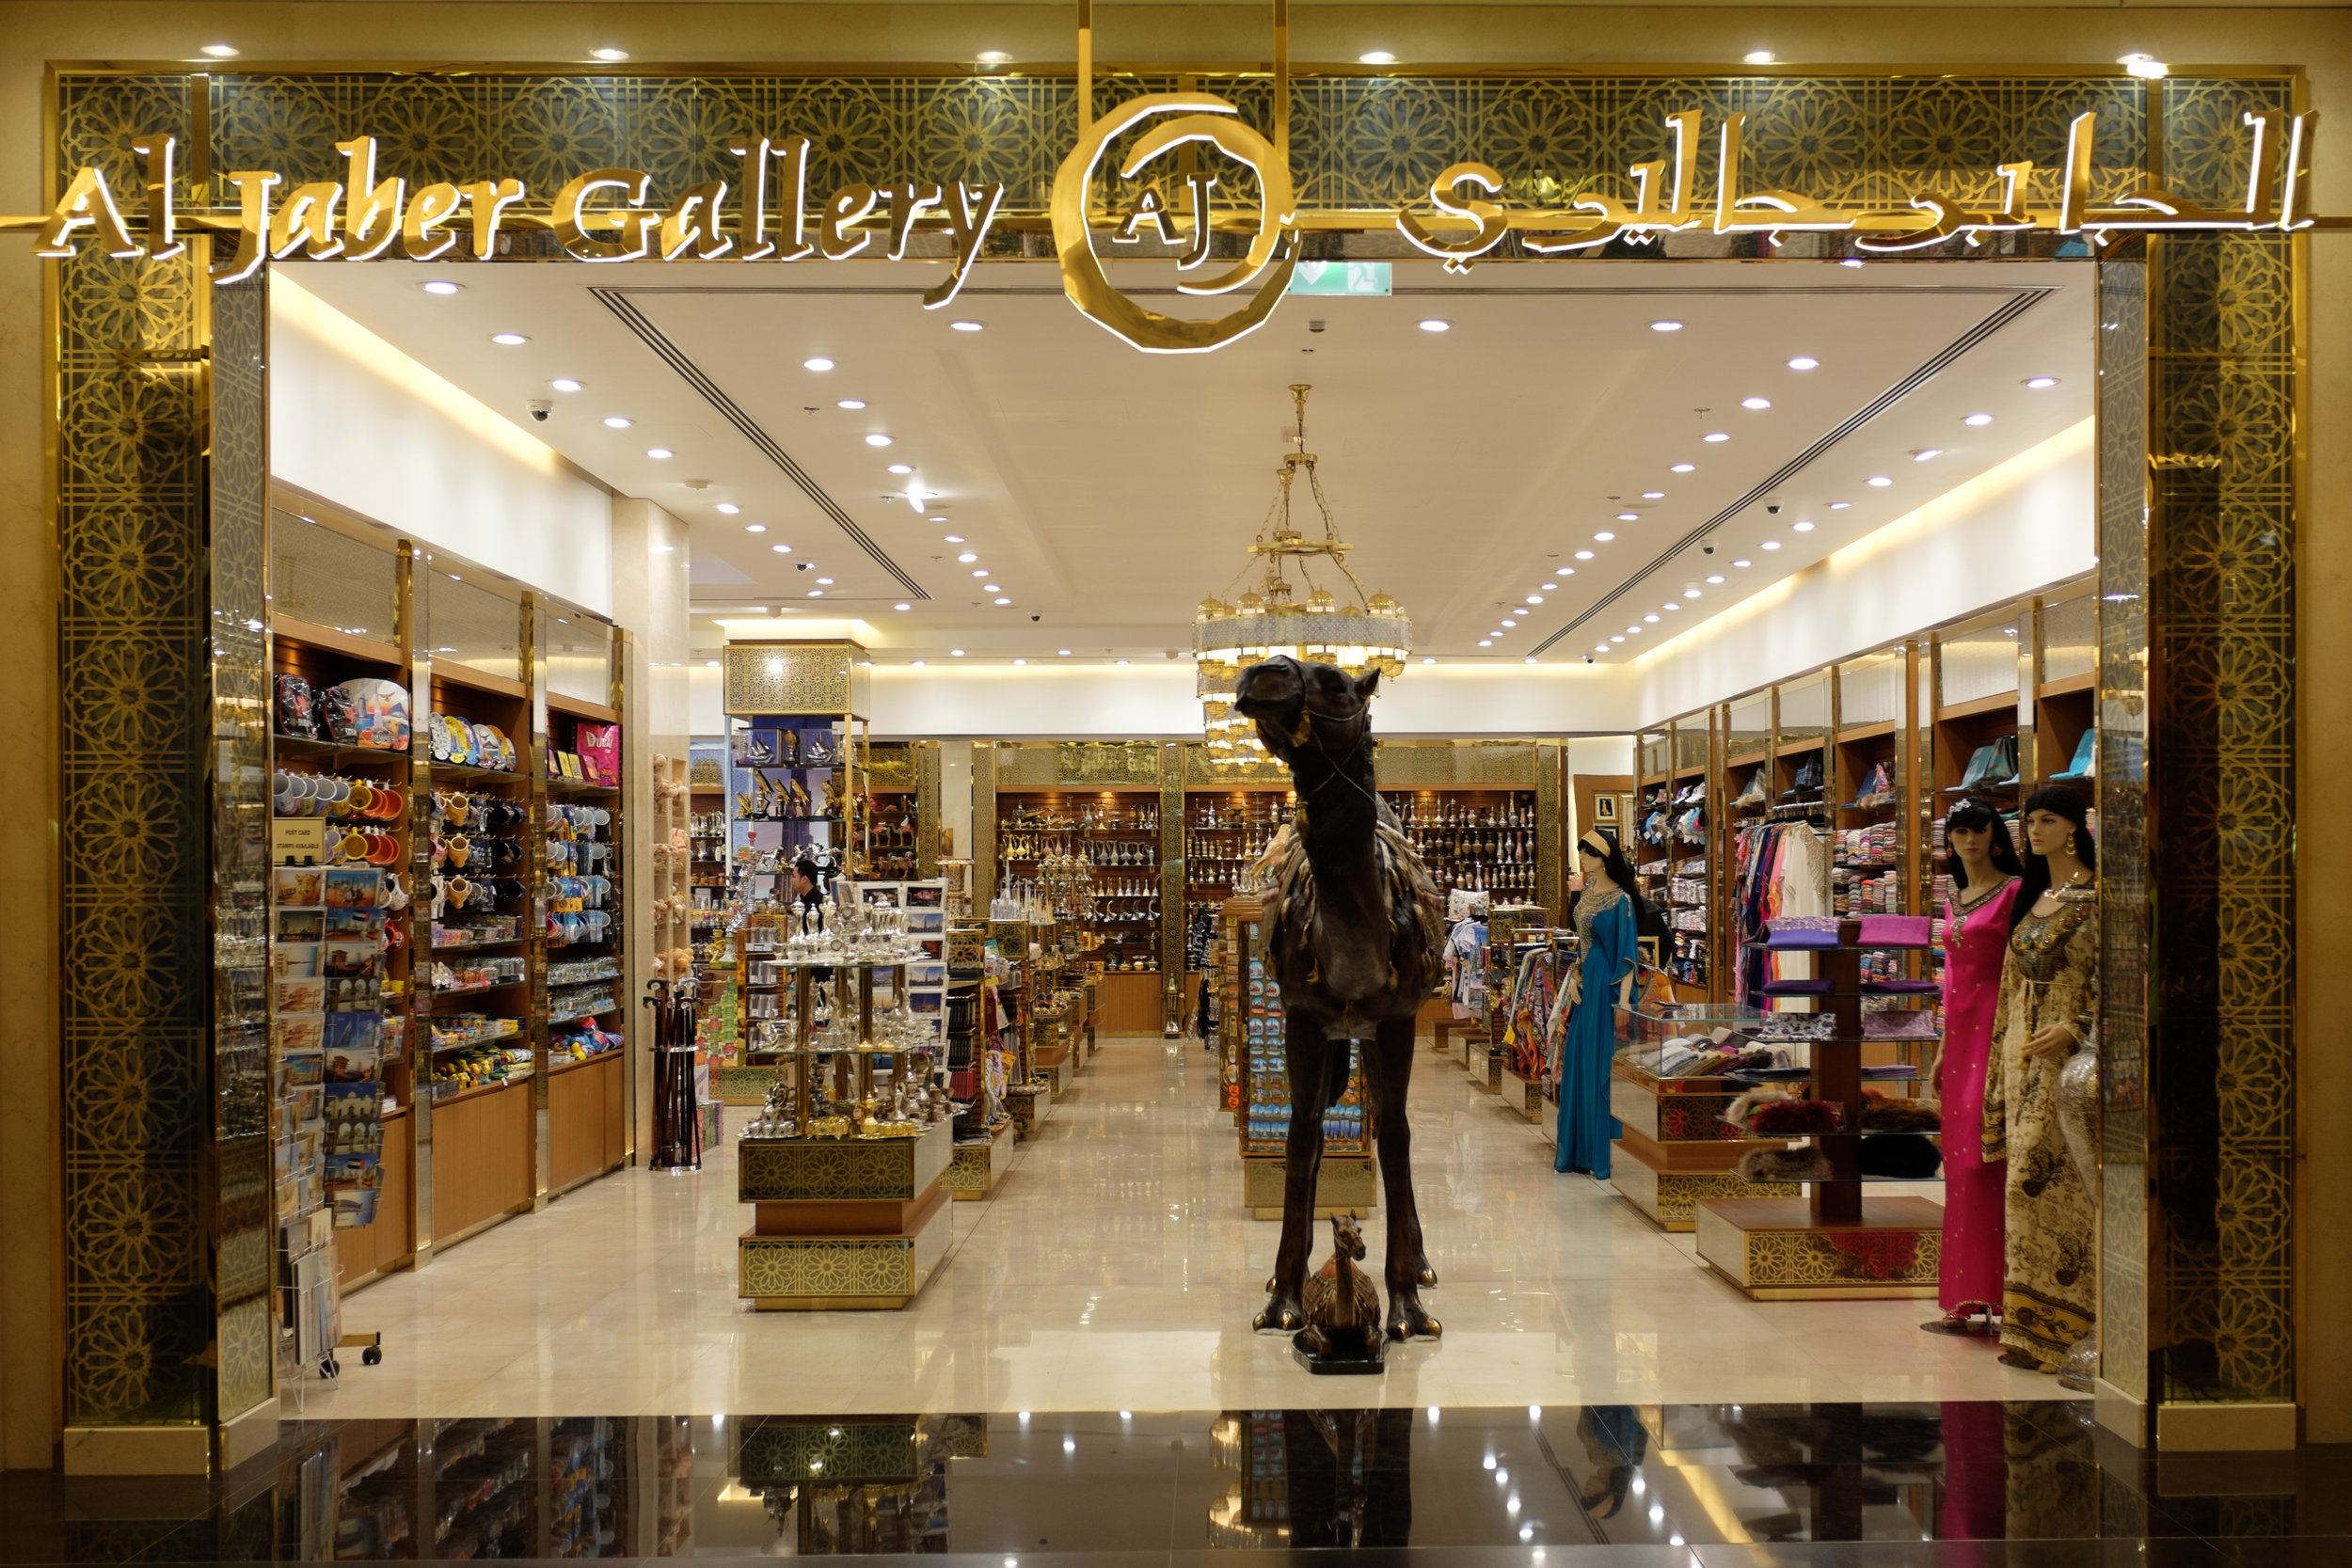 Nothing to see here, just a fake camel in a store at the Mall Of The Emirates.